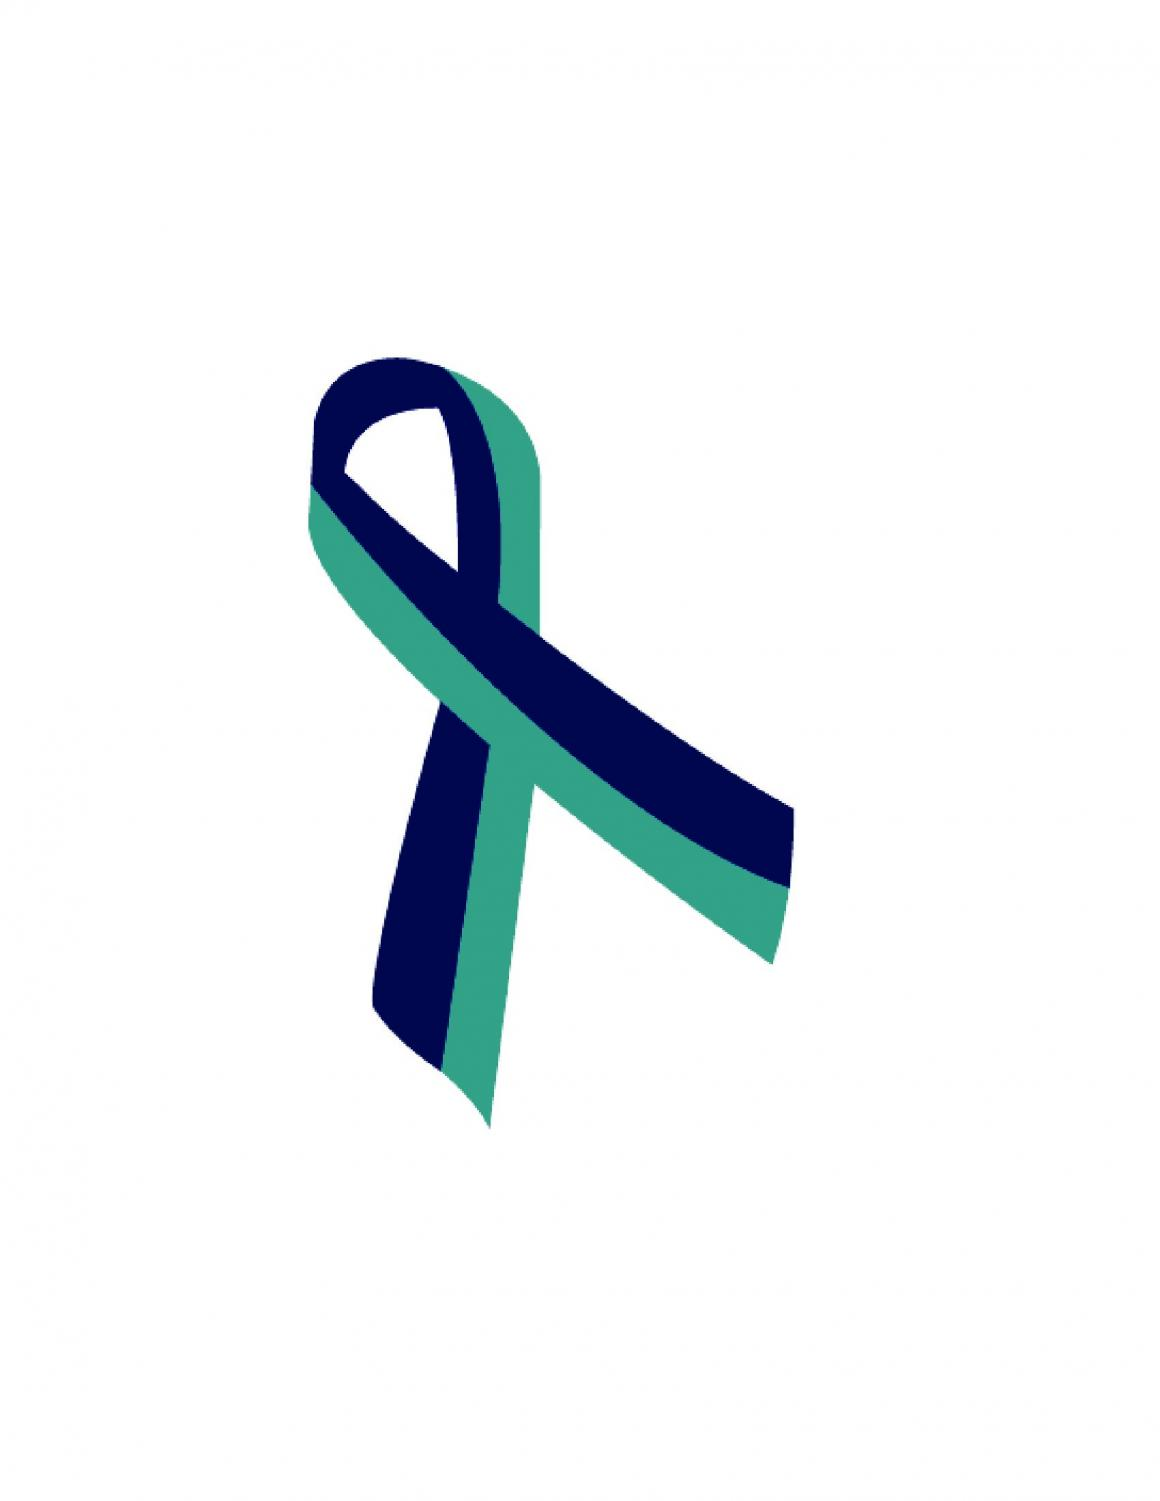 The turquoise and purple ribbon represents suicide prevention.